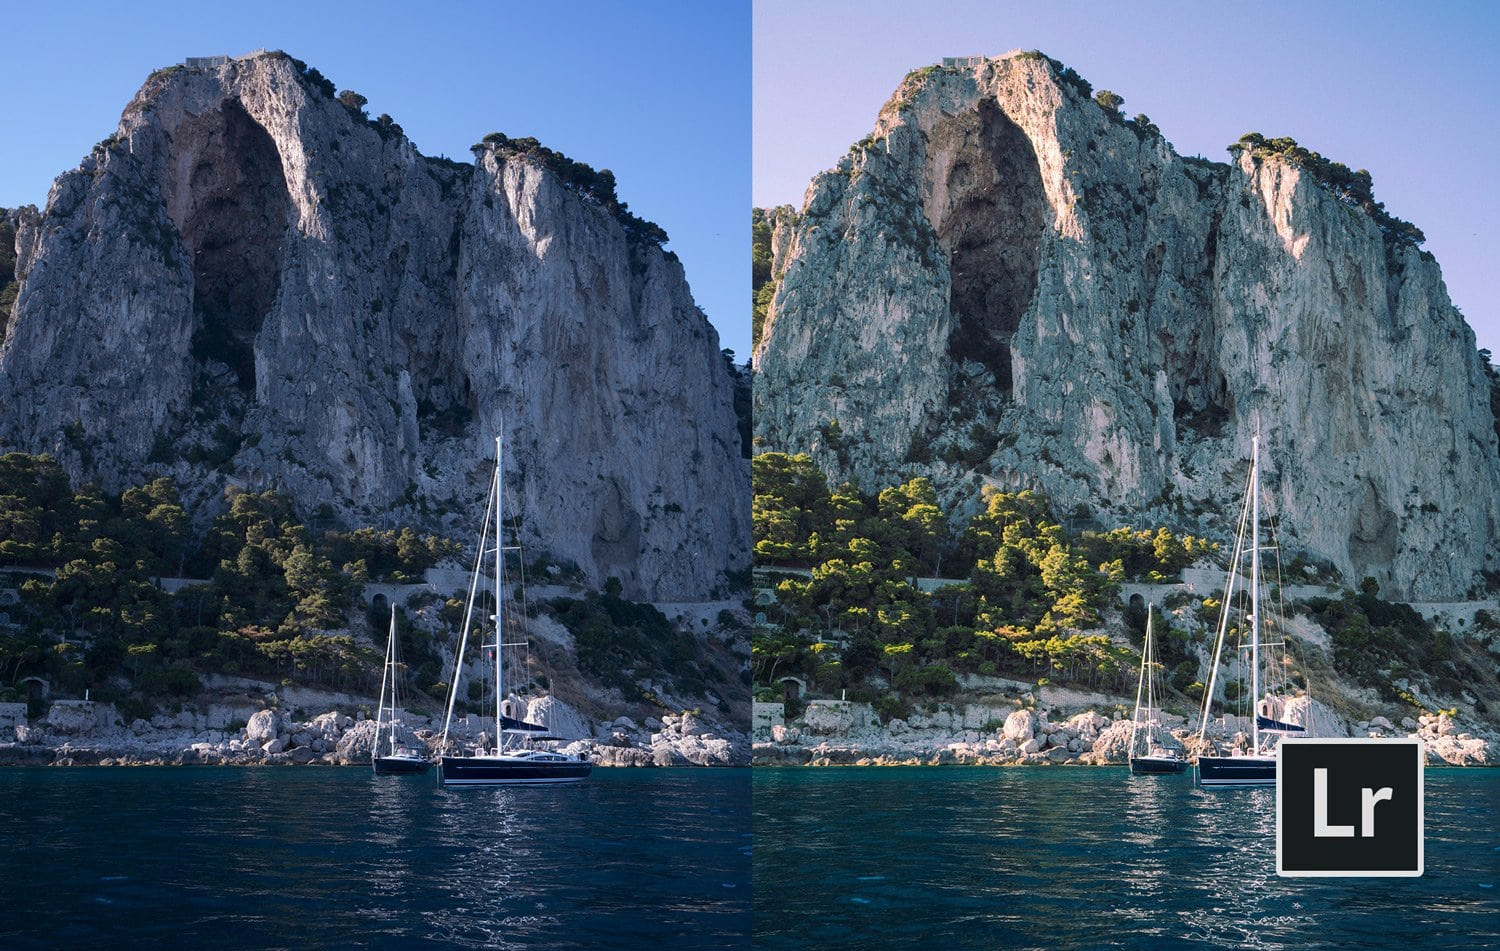 Free-Lightroom-Preset-Sailboats-Showing-Before-and-After-Presetpro.com